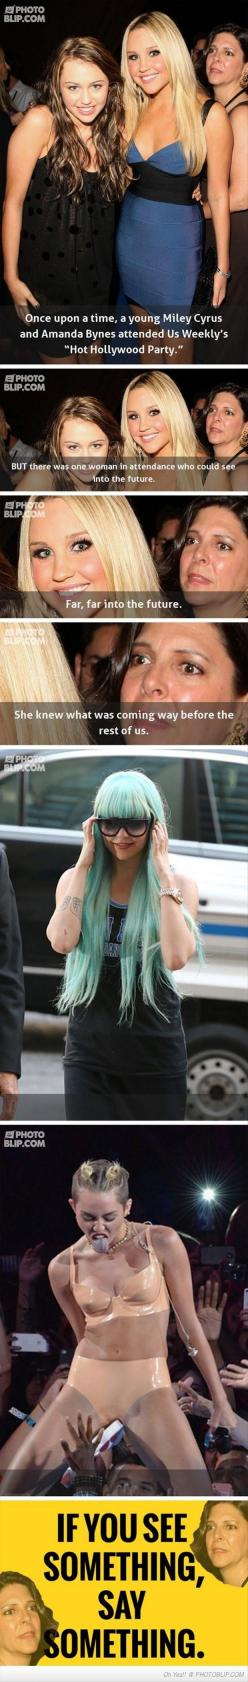 XD: Something Say, Miley Cyrus, Face, Giggle, So True, Funny Stuff, So Funny, Mileycyrus